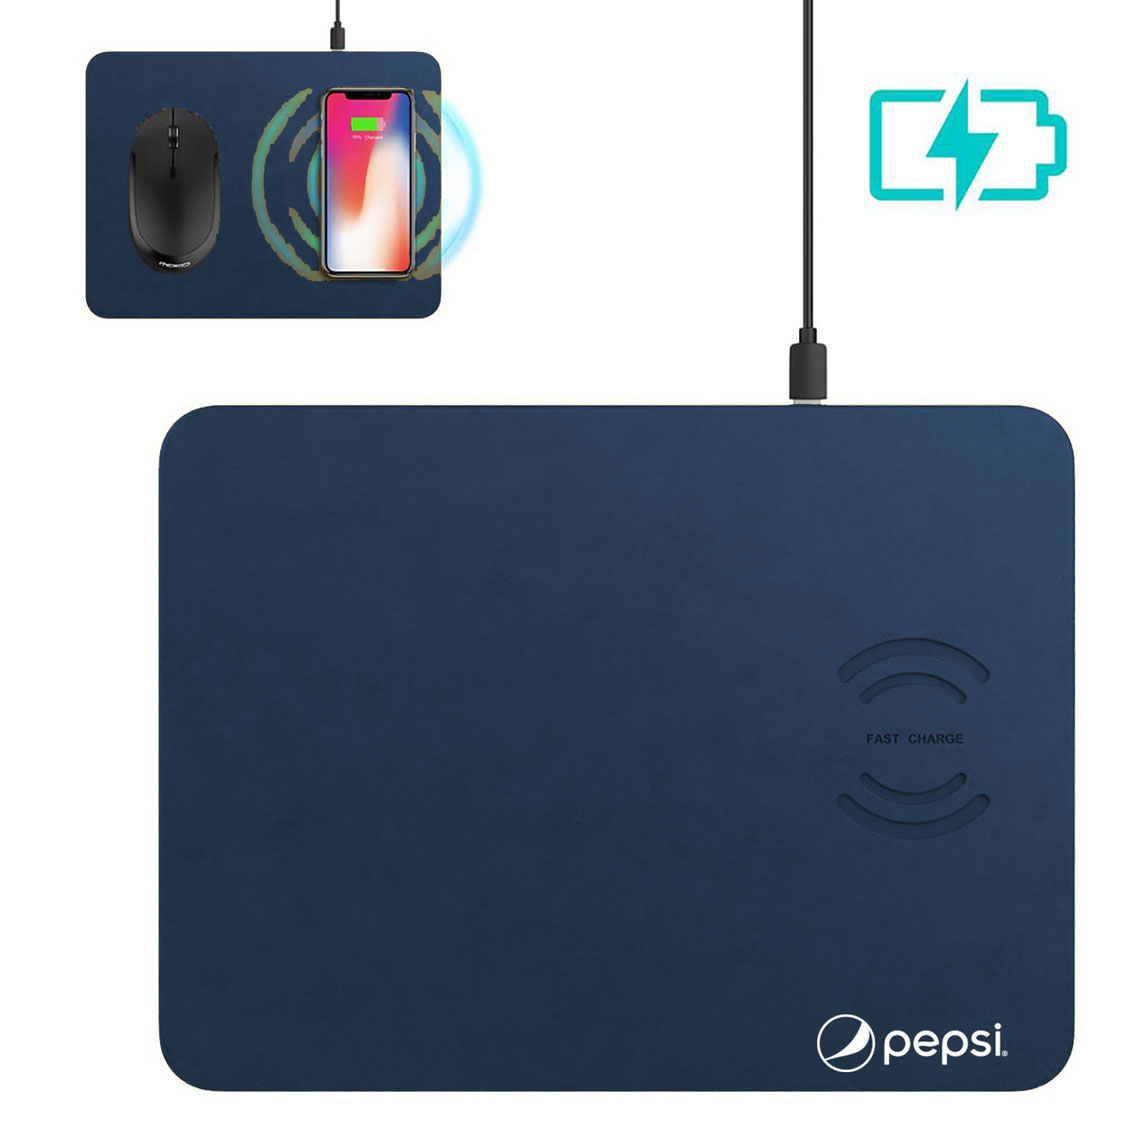 Leather Wireless Mousepad Charger - Pepsi